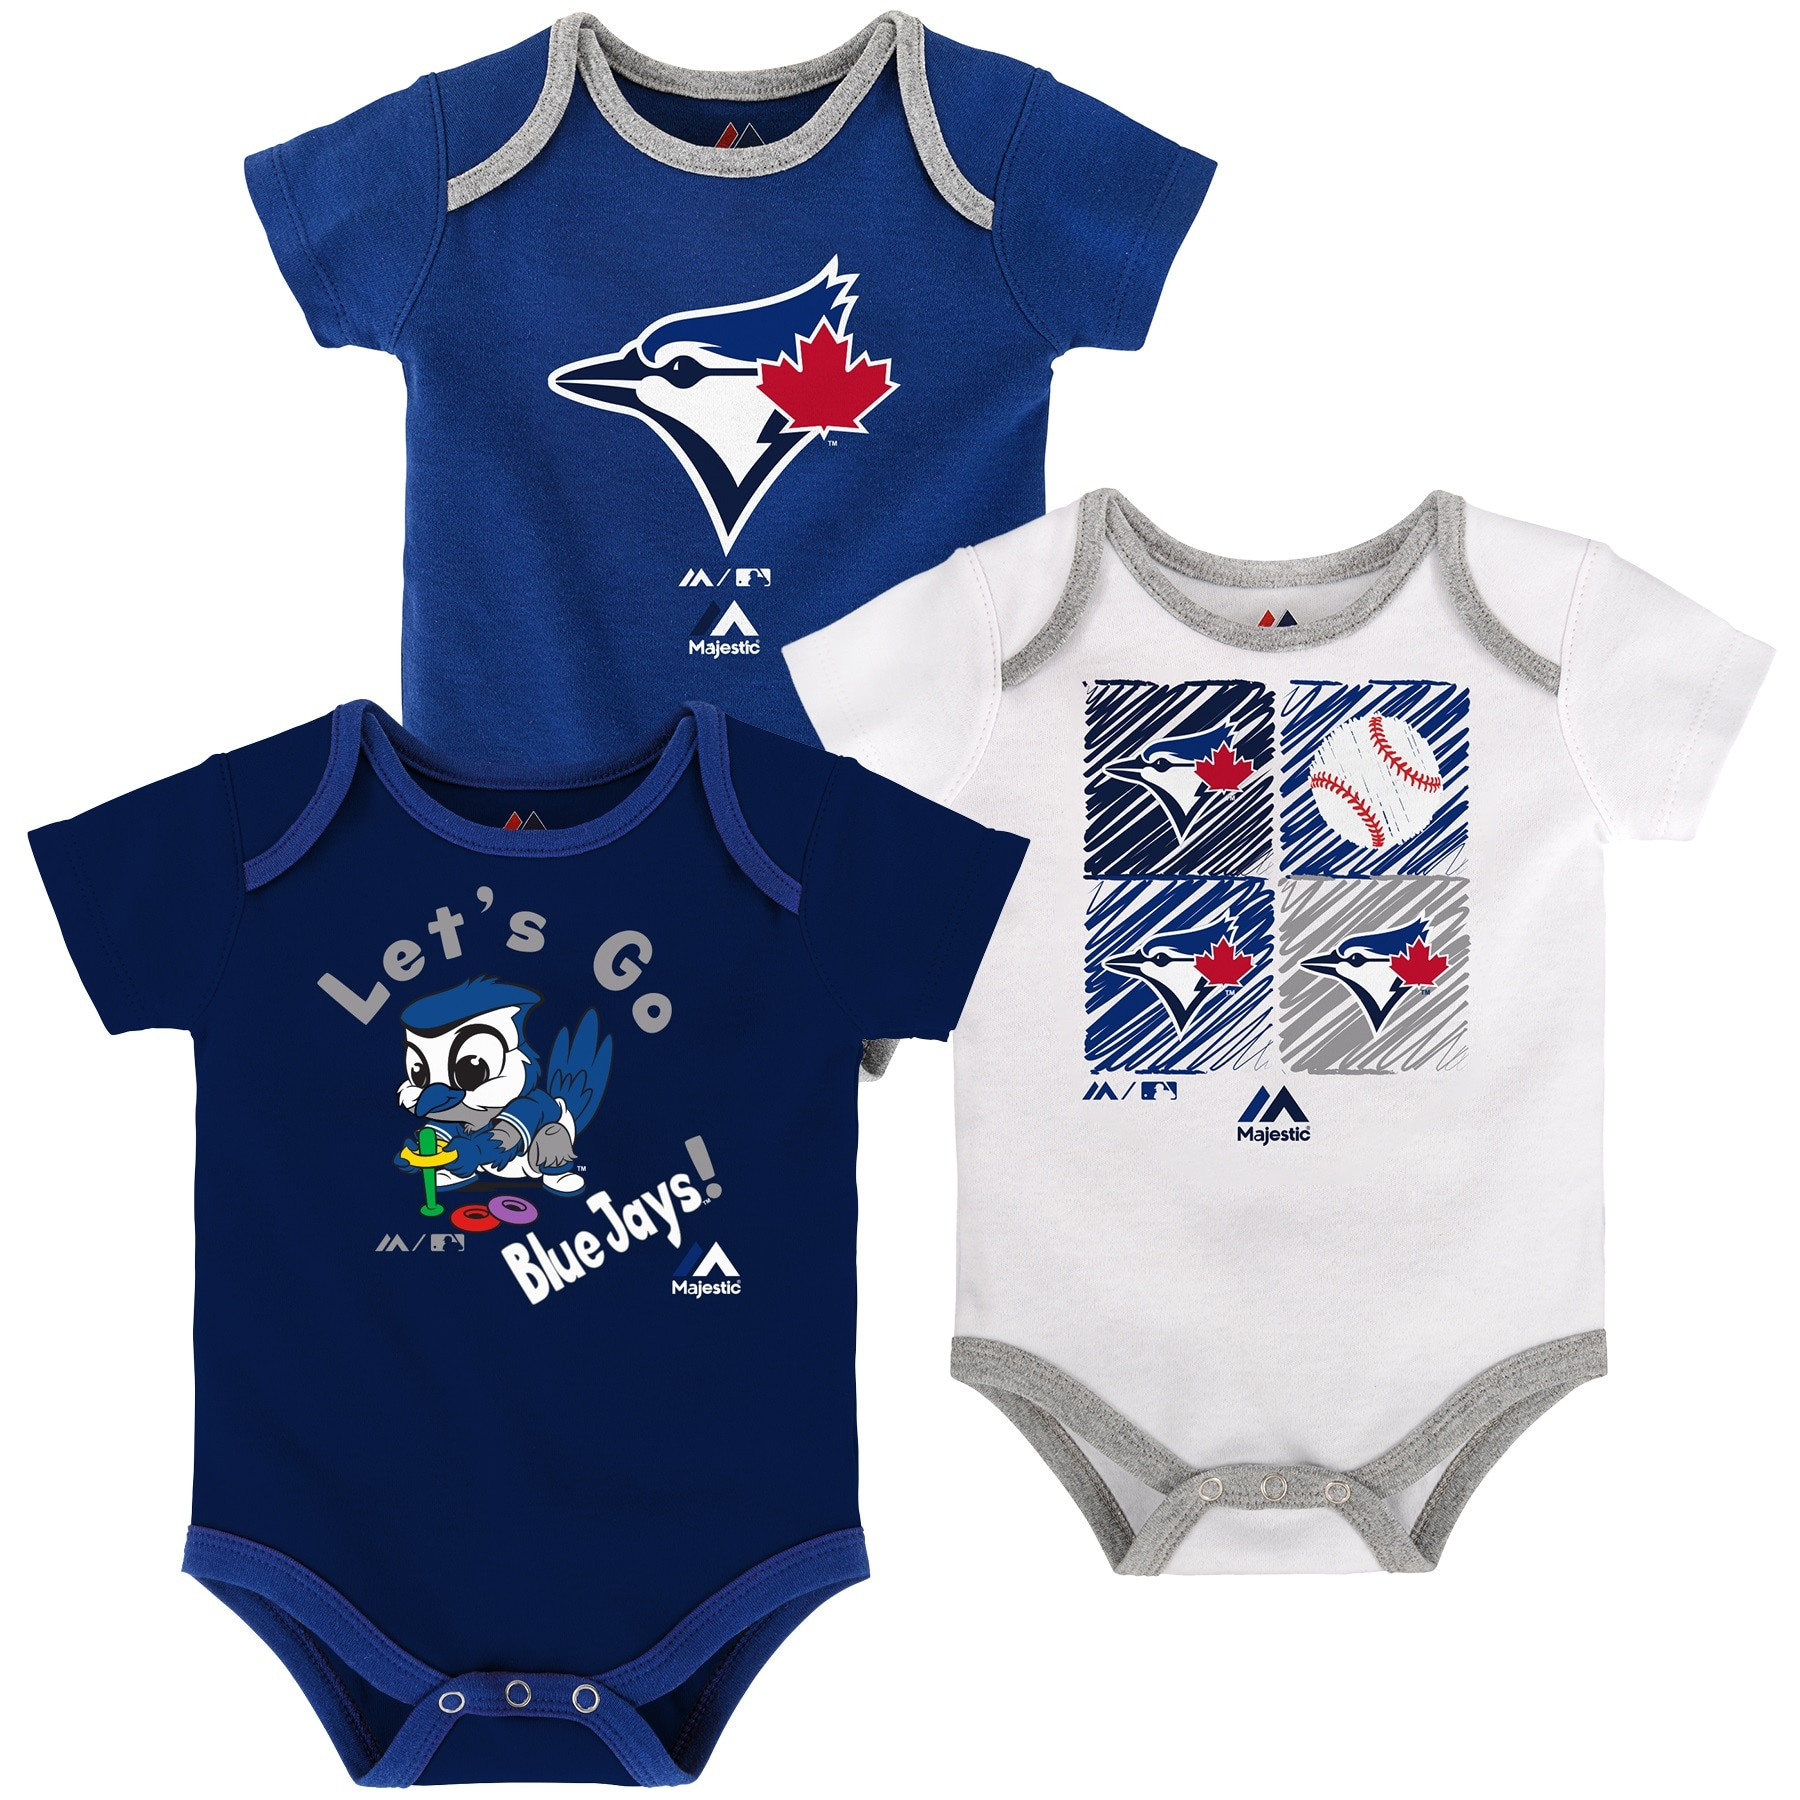 Toronto Blue Jays Majestic Newborn & Infant Go Team 3-Pack Bodysuit Set - Royal/Navy/White